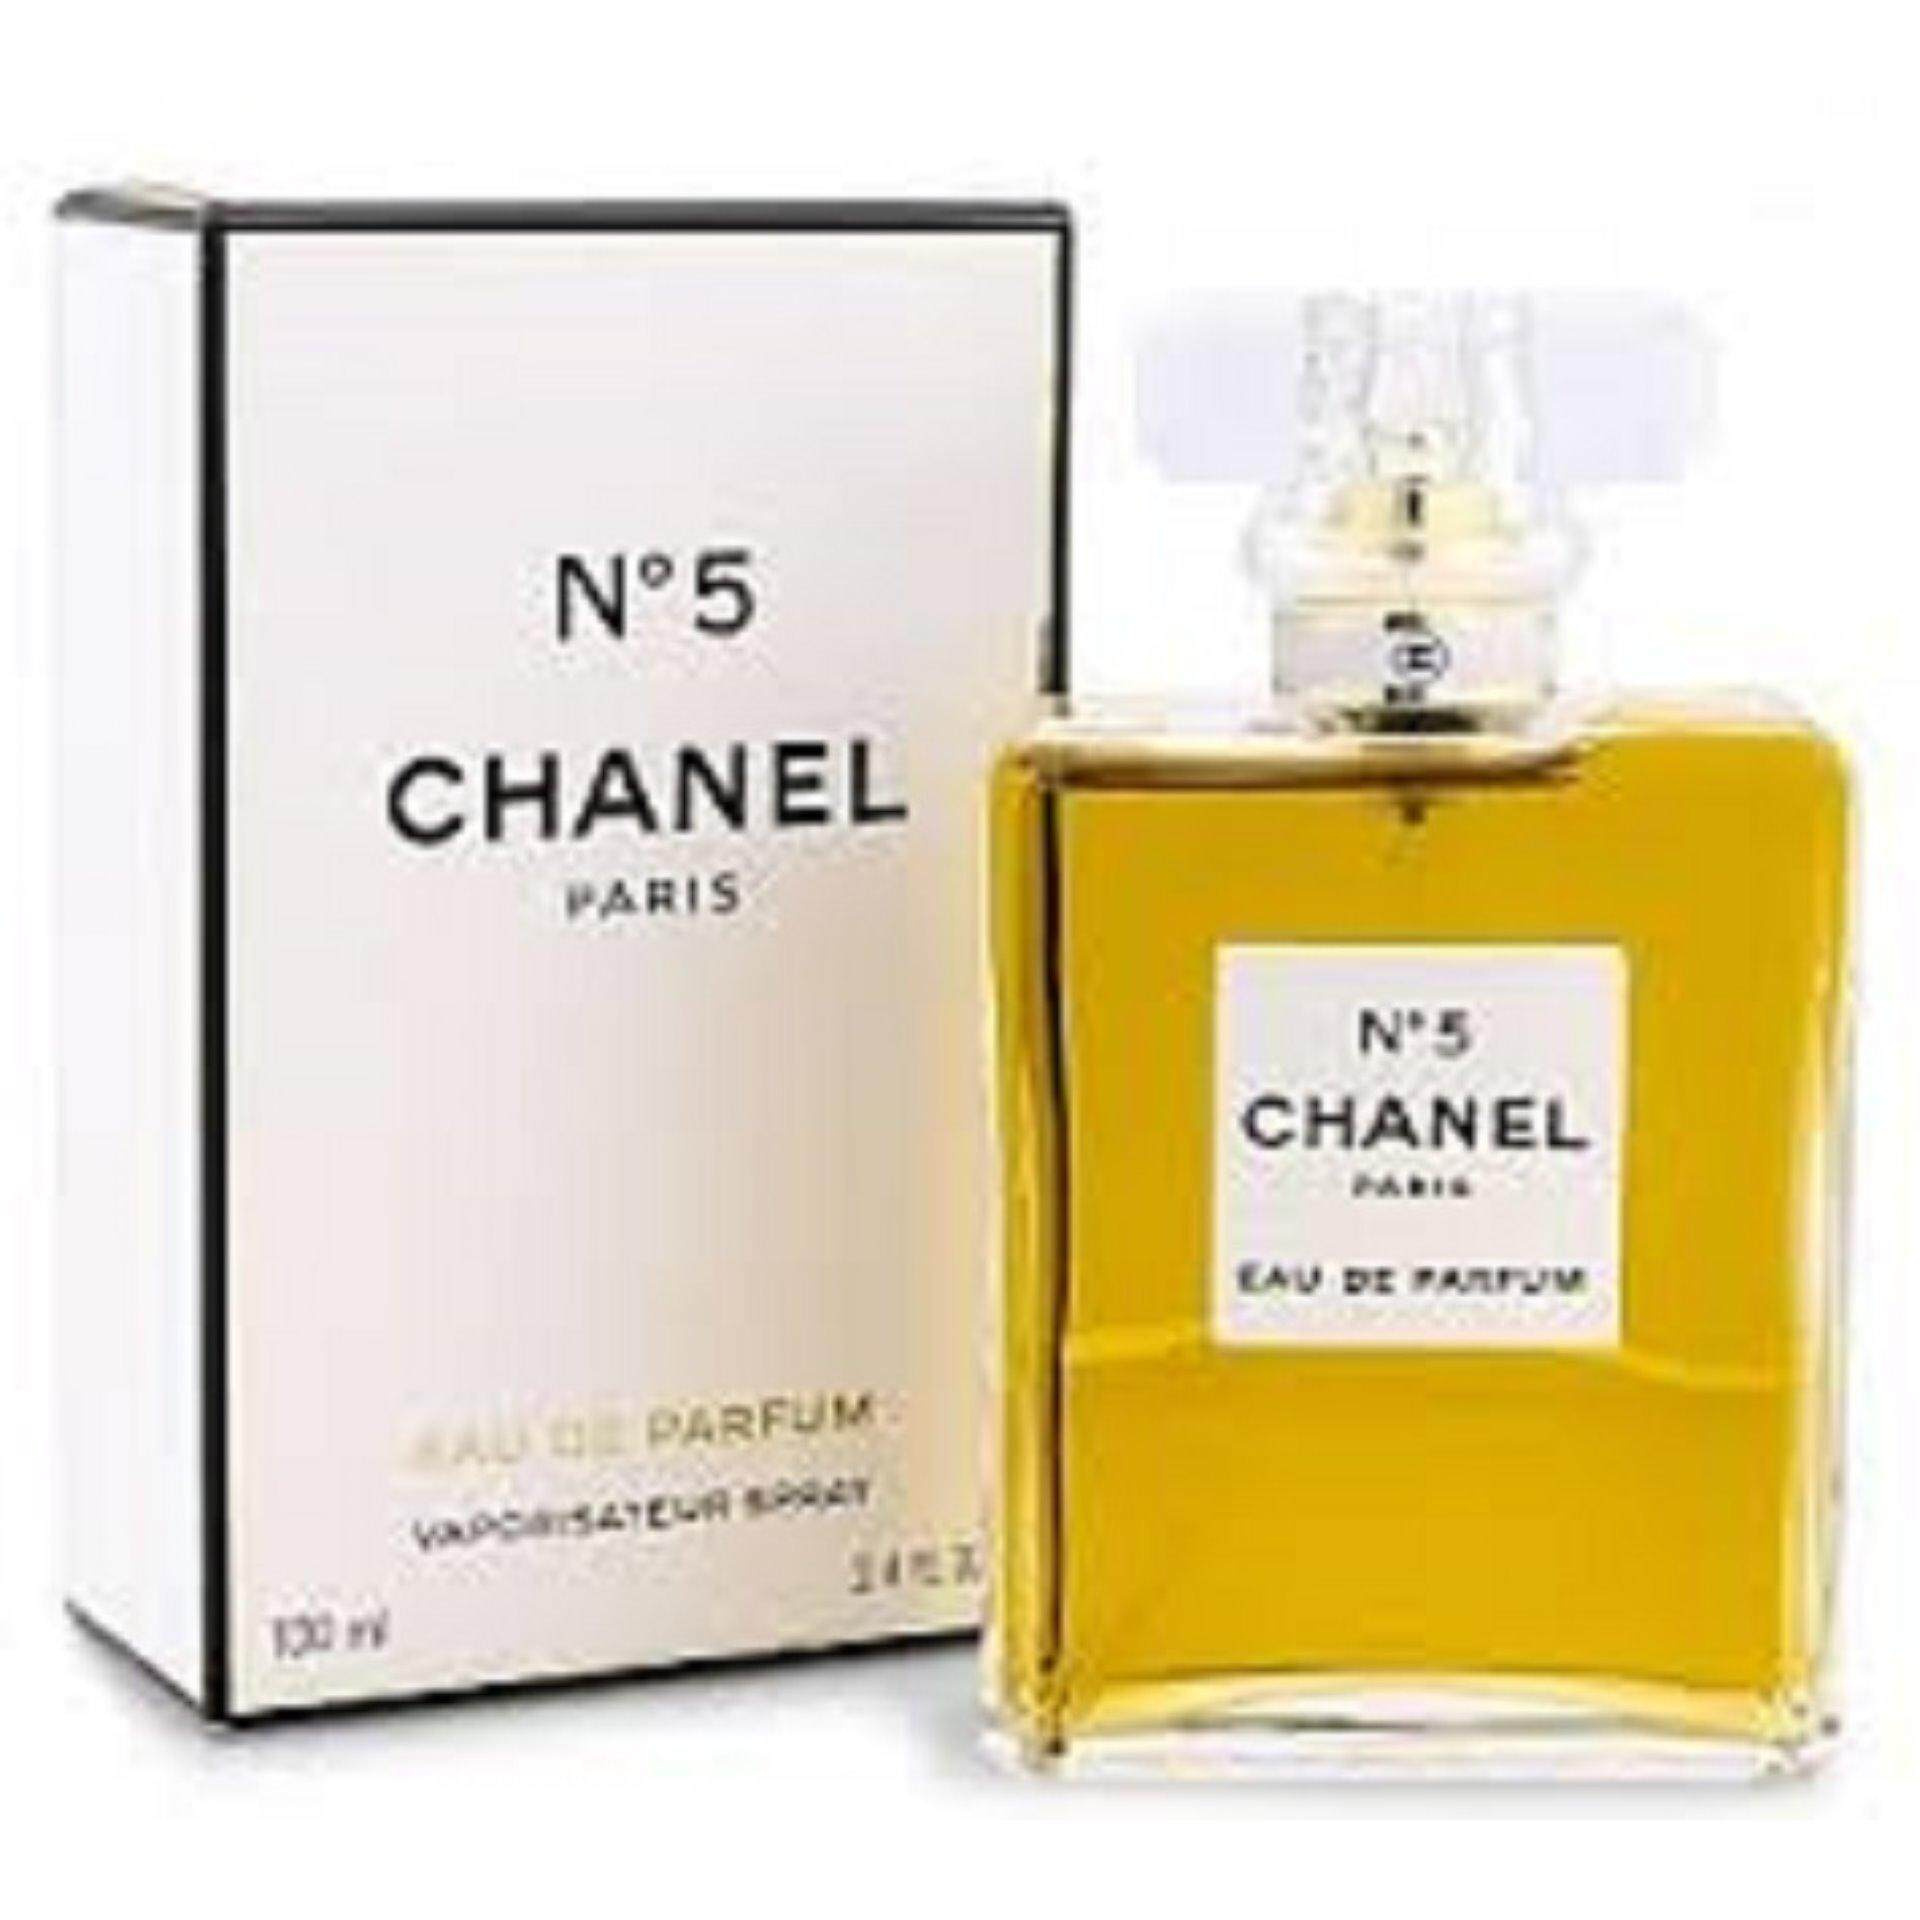 Chanel No 5 Perfume Parfum 50ml Large Bottle 1.7oz, 50ml - Clearance Sale Way Below Cost